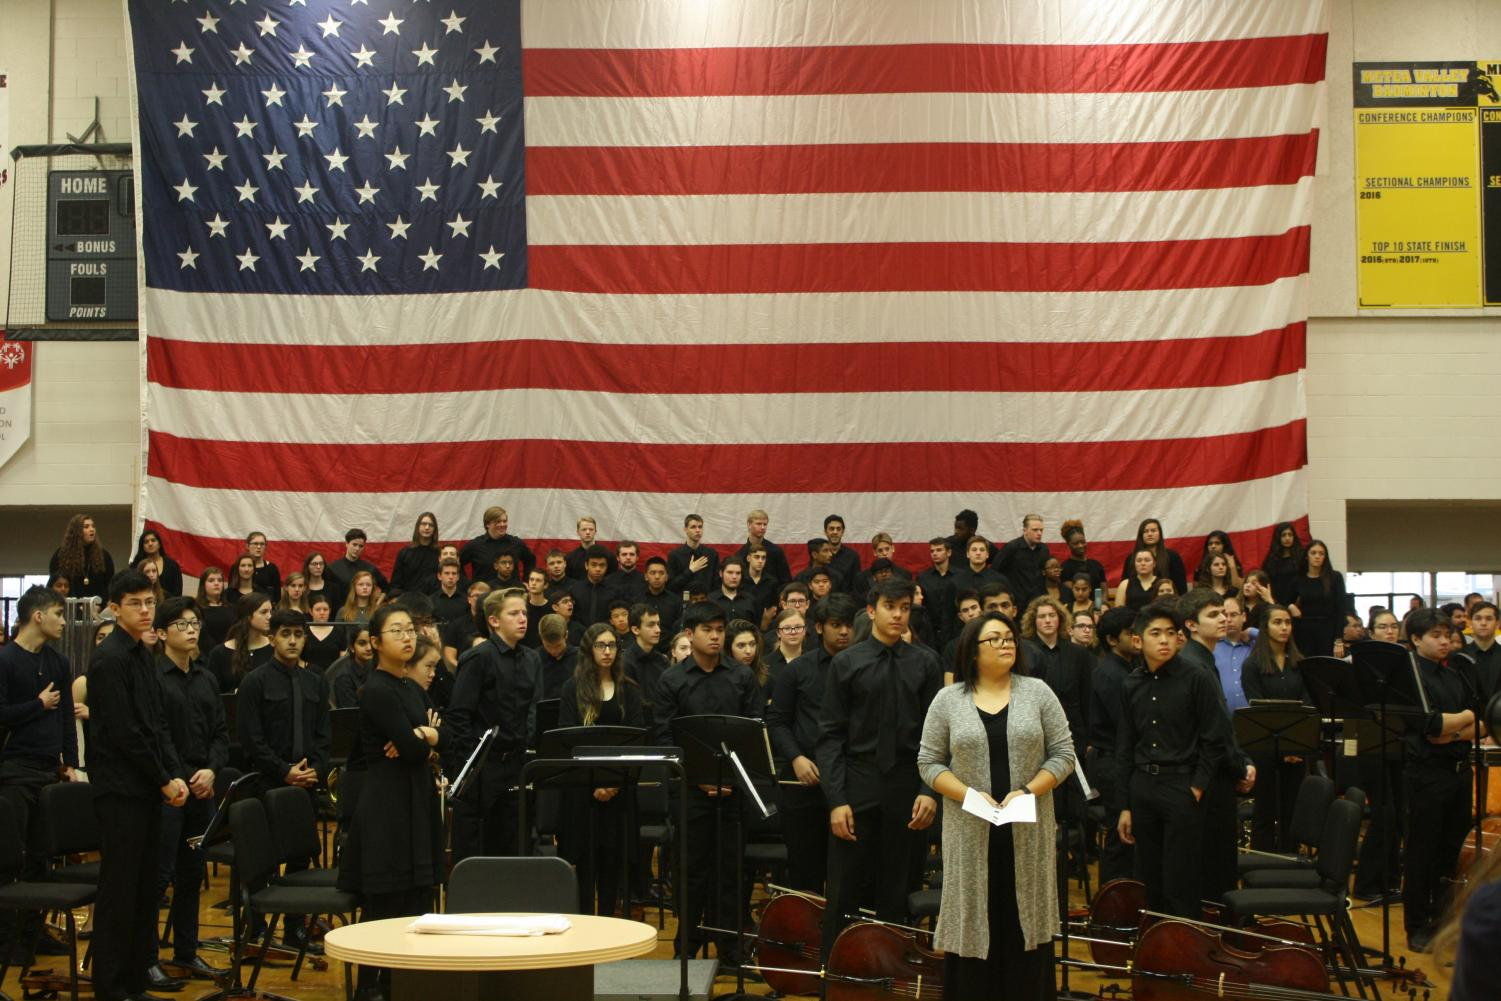 Orchestra faces the boy scouts as they bring in the flags.